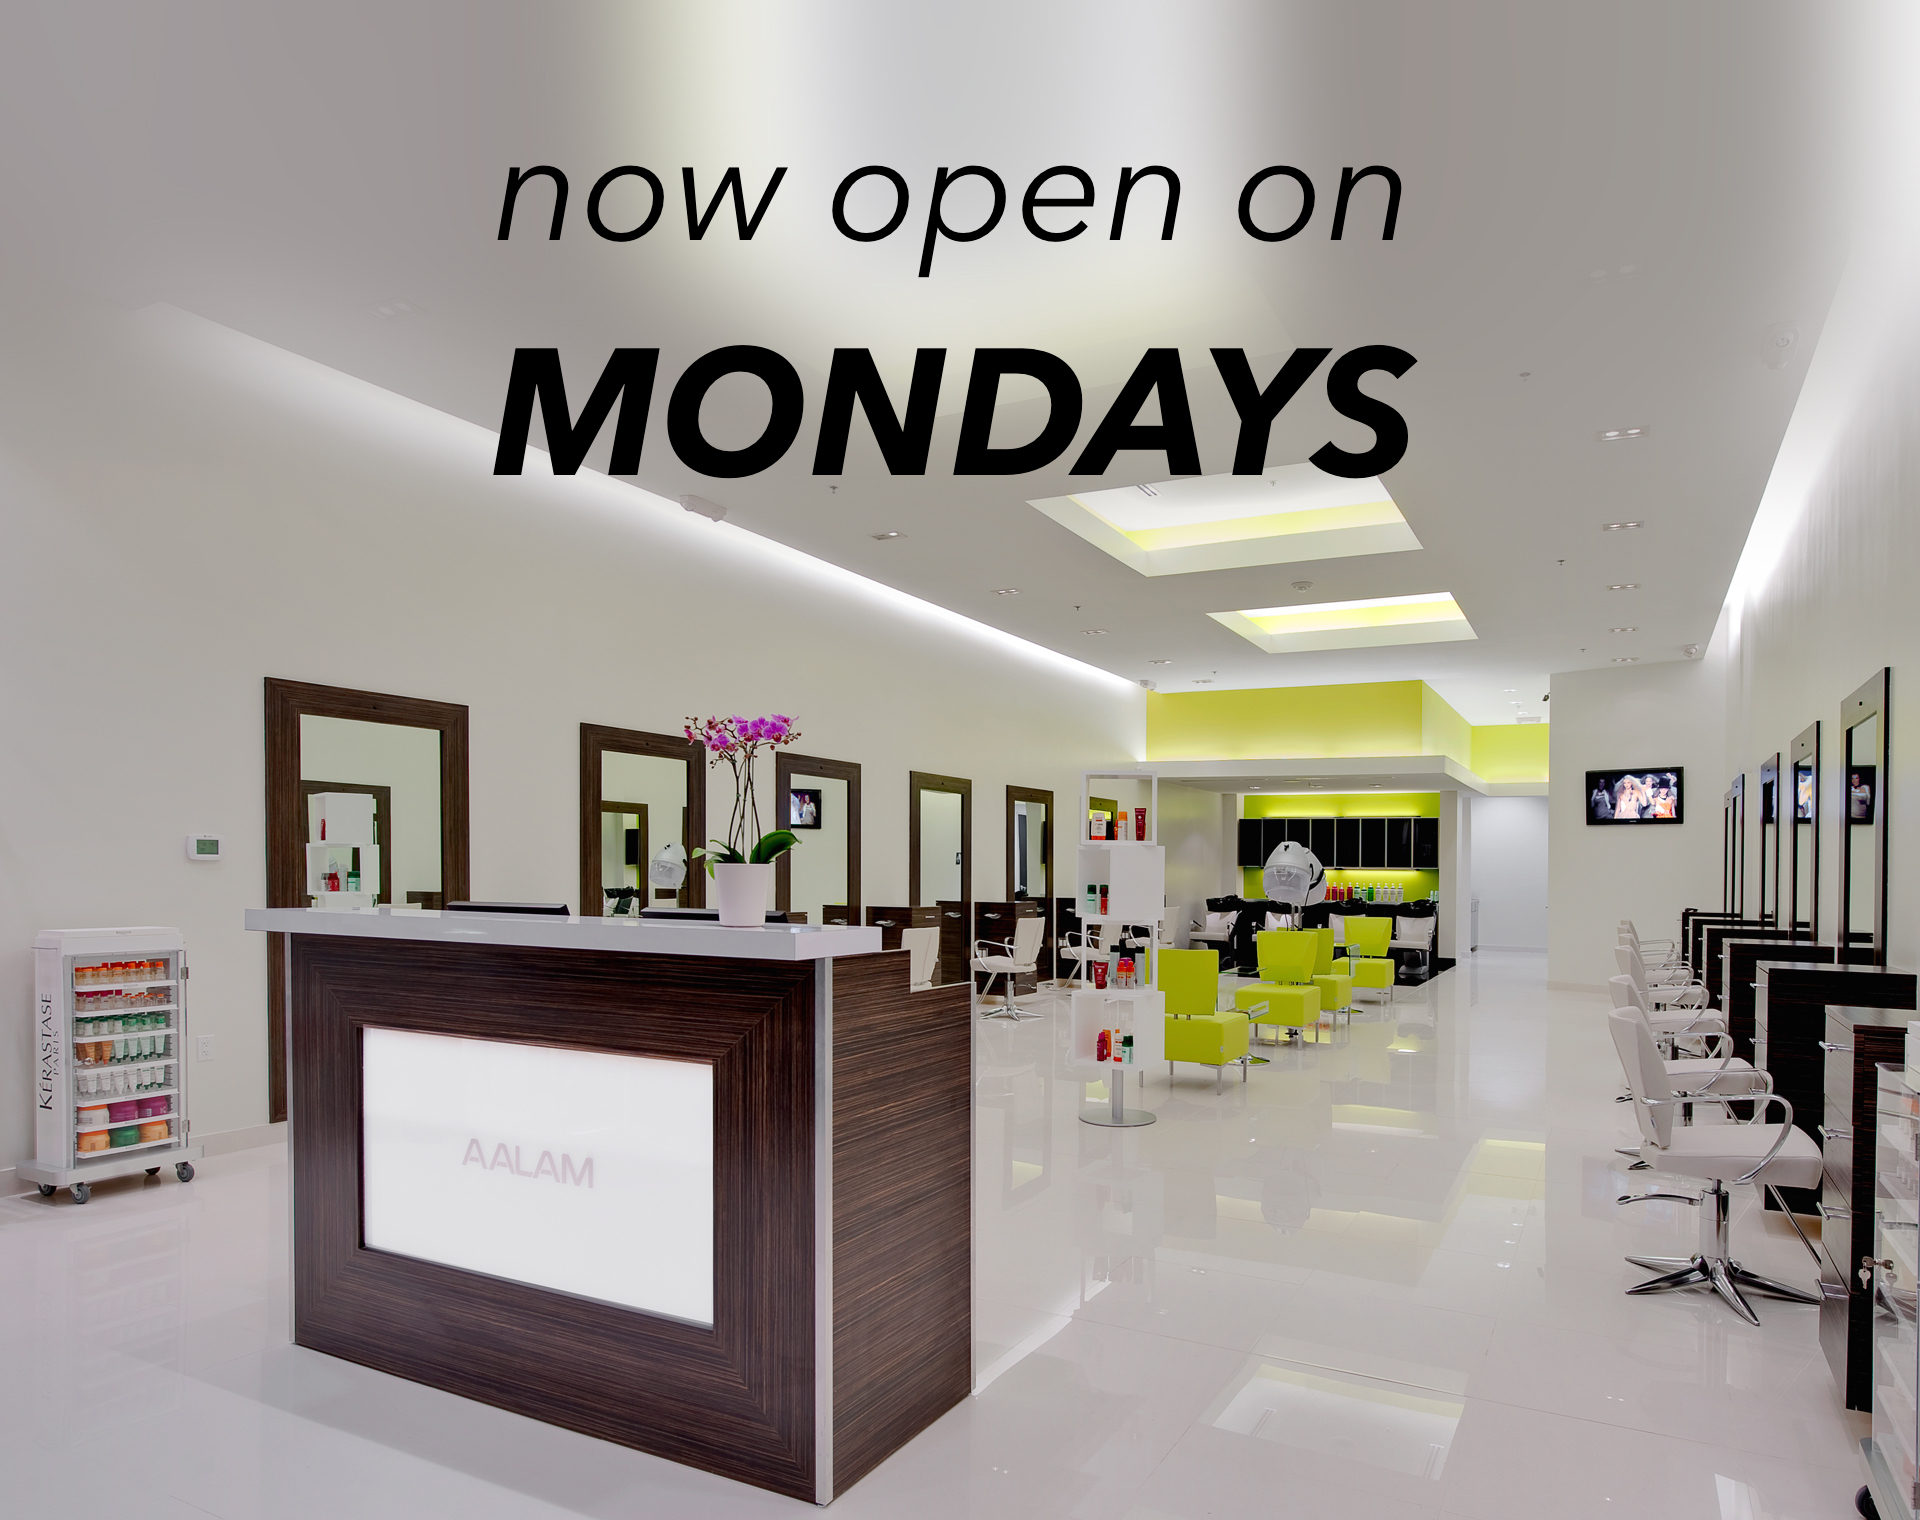 AALAM The salon now open on Mondays Serving North Dallas – Plano – Frisco